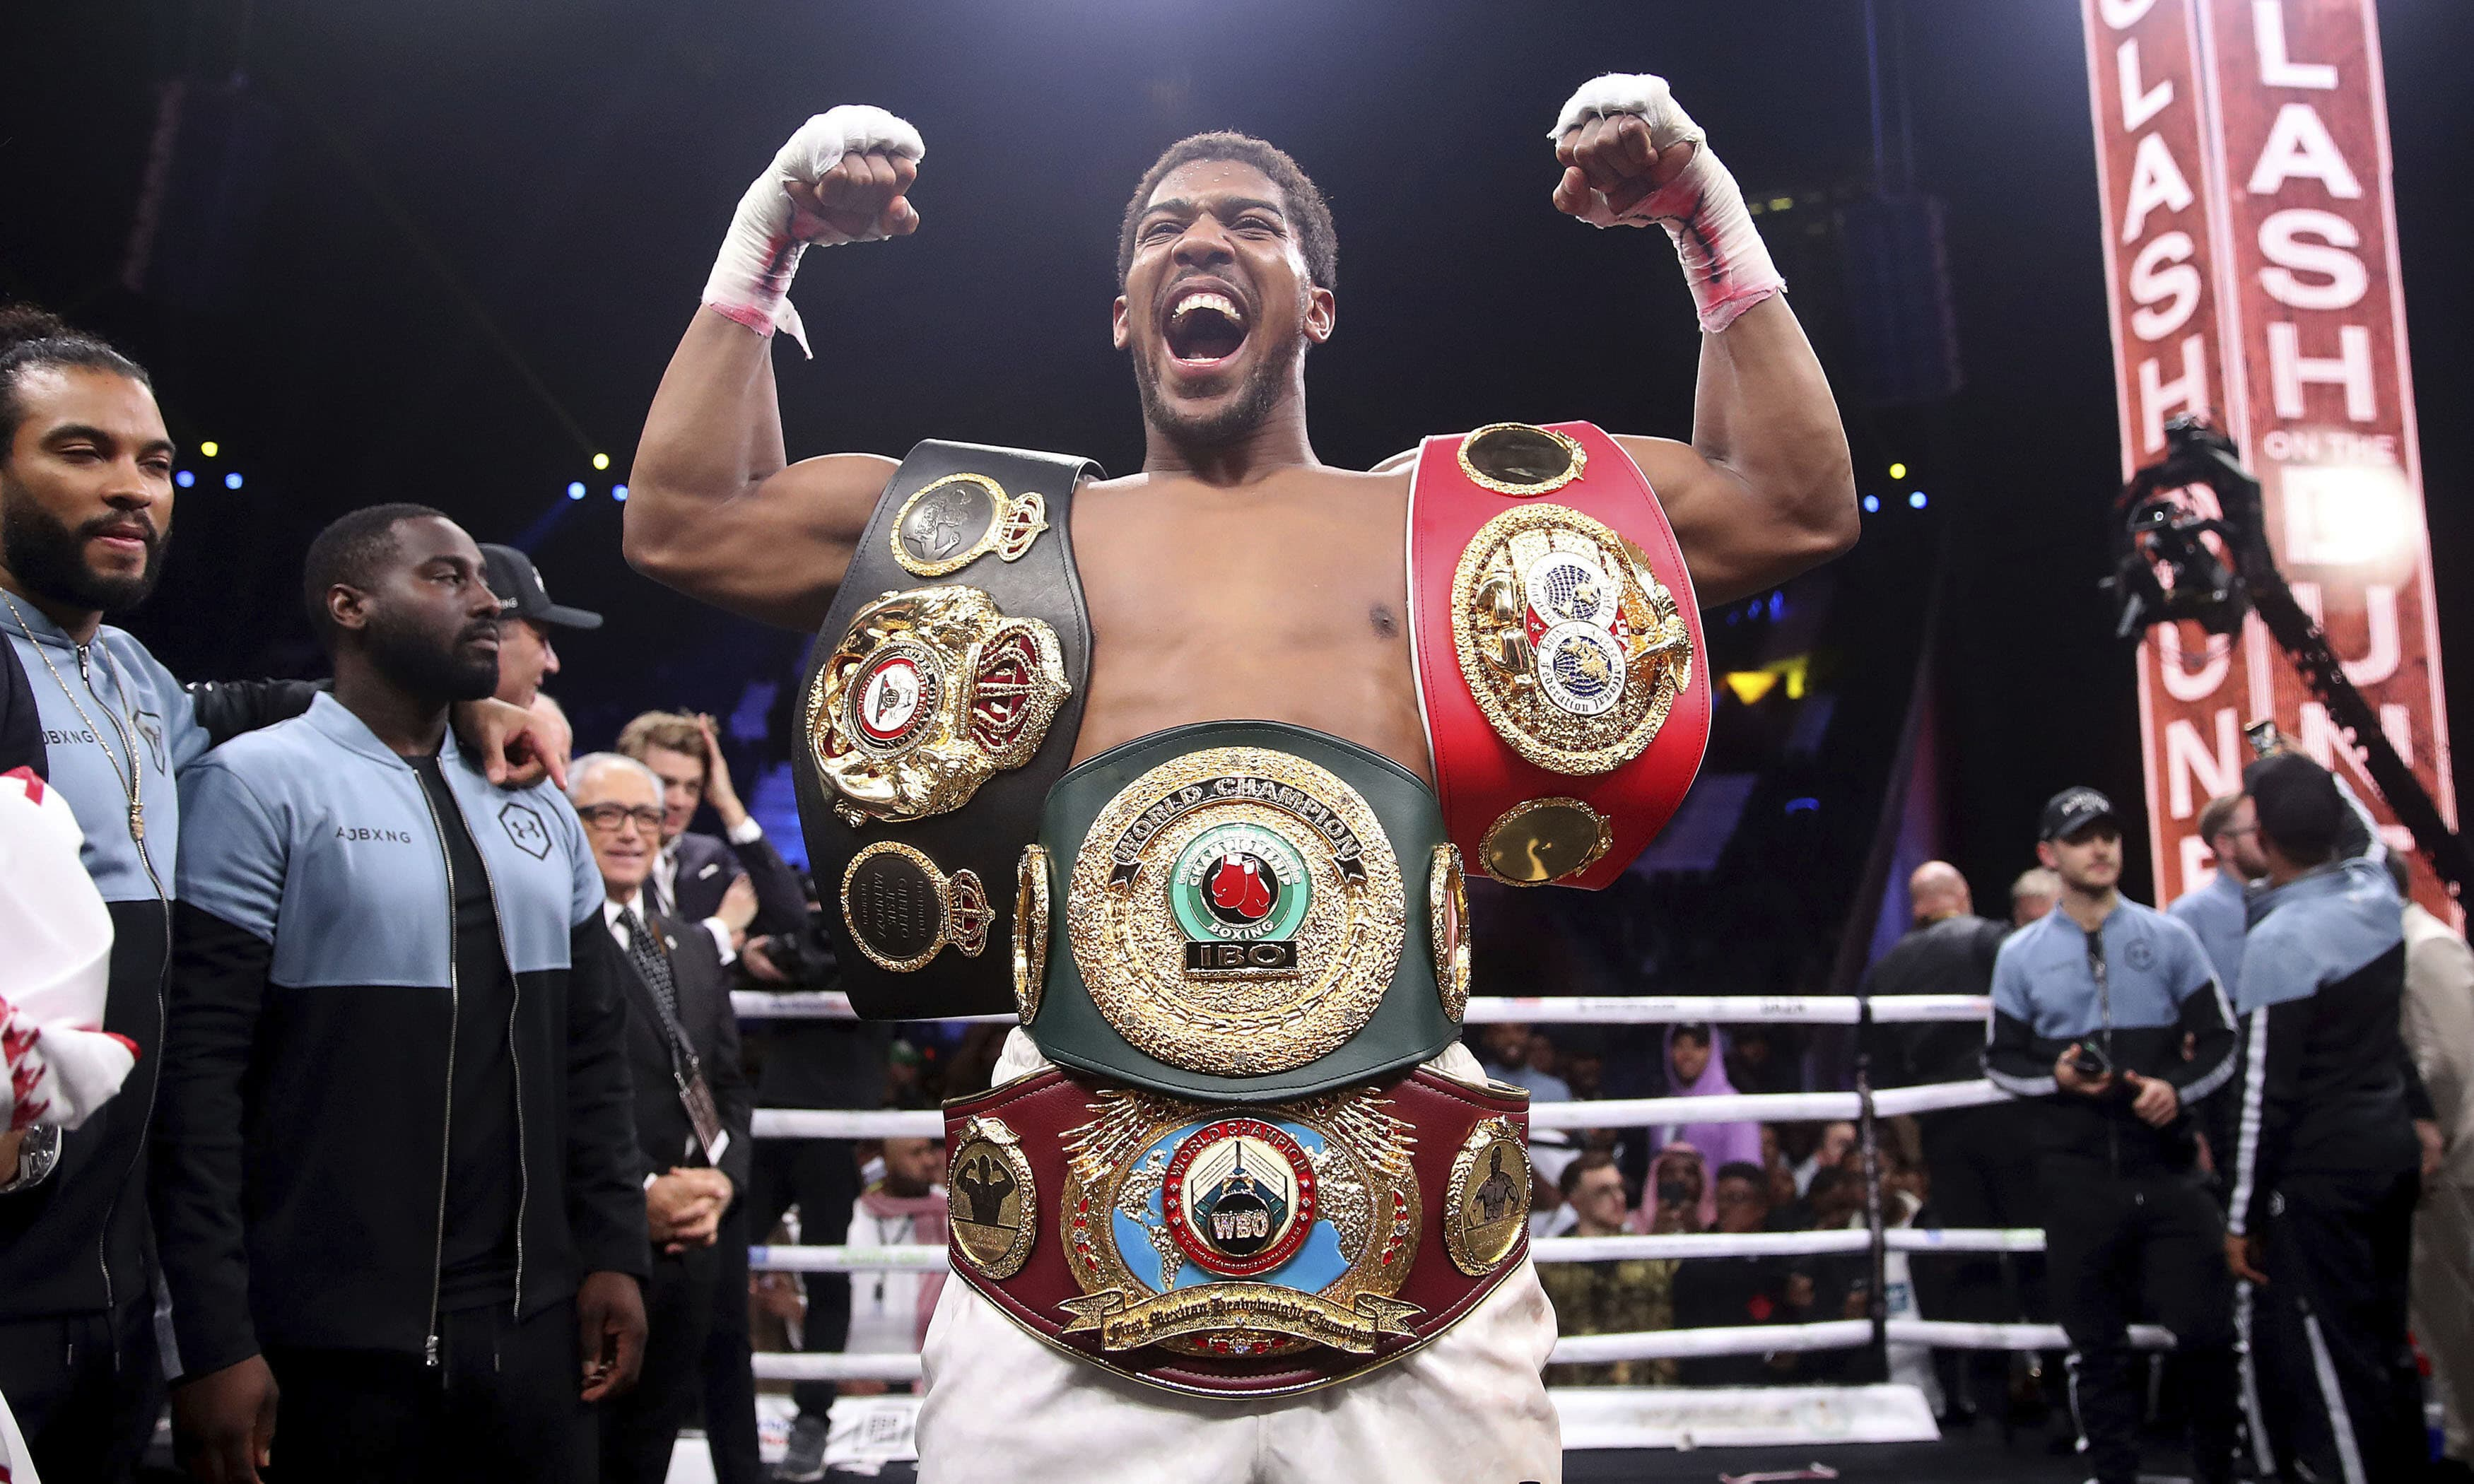 Britain's Anthony Joshua celebrates after beating  Andy Ruiz Jr on points to win their World Heavyweight Championship at the Diriyah Arena, Riyadh on Sunday Dec 8. —AP